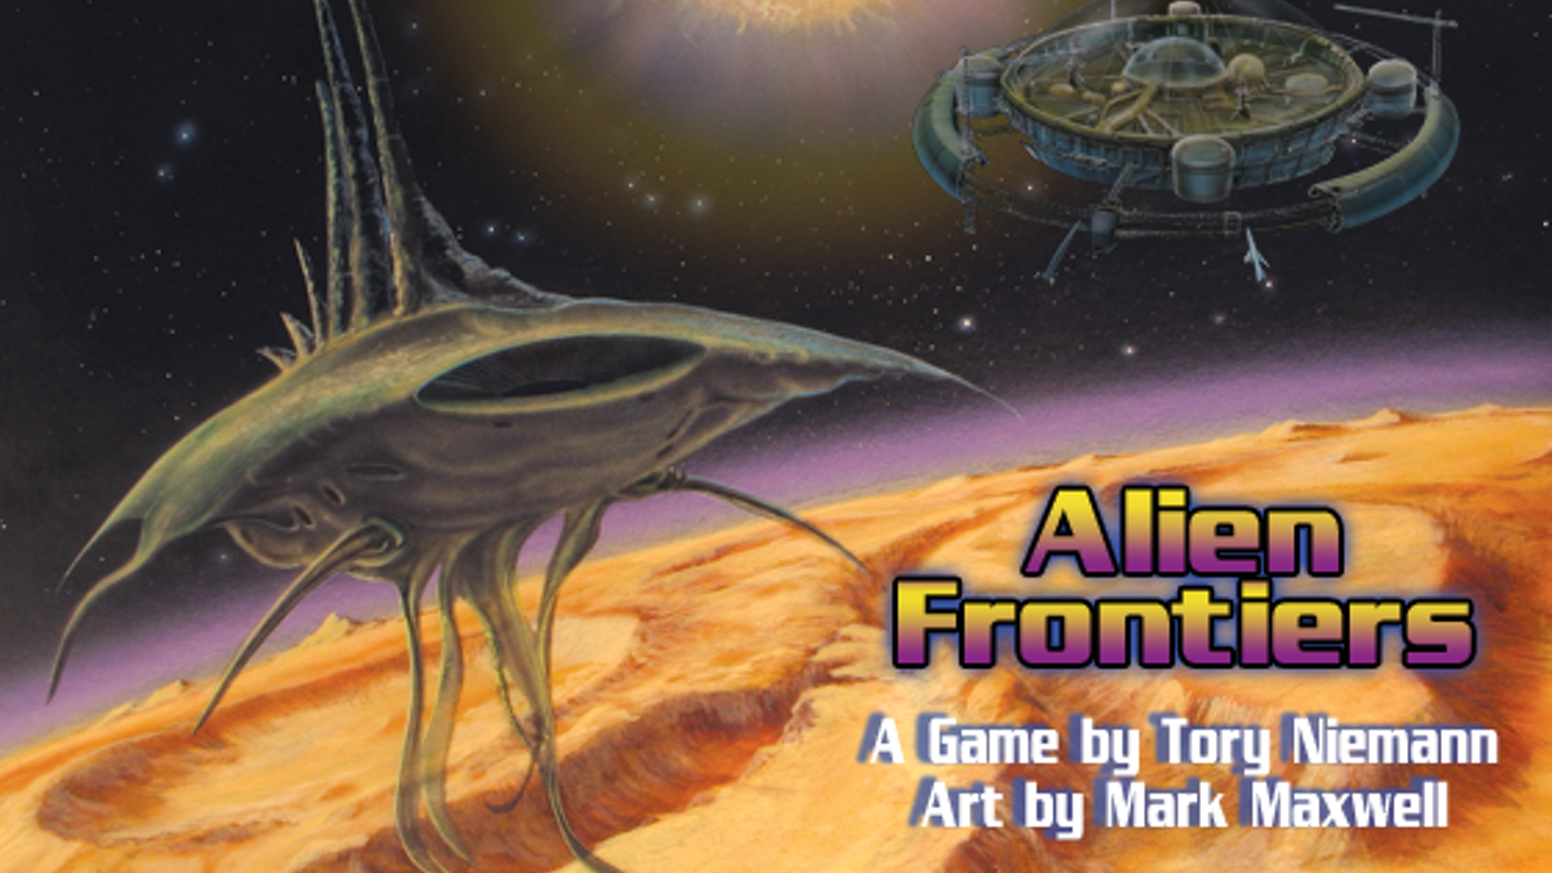 Alien Frontiers Retro Future Sci Fi Board Game